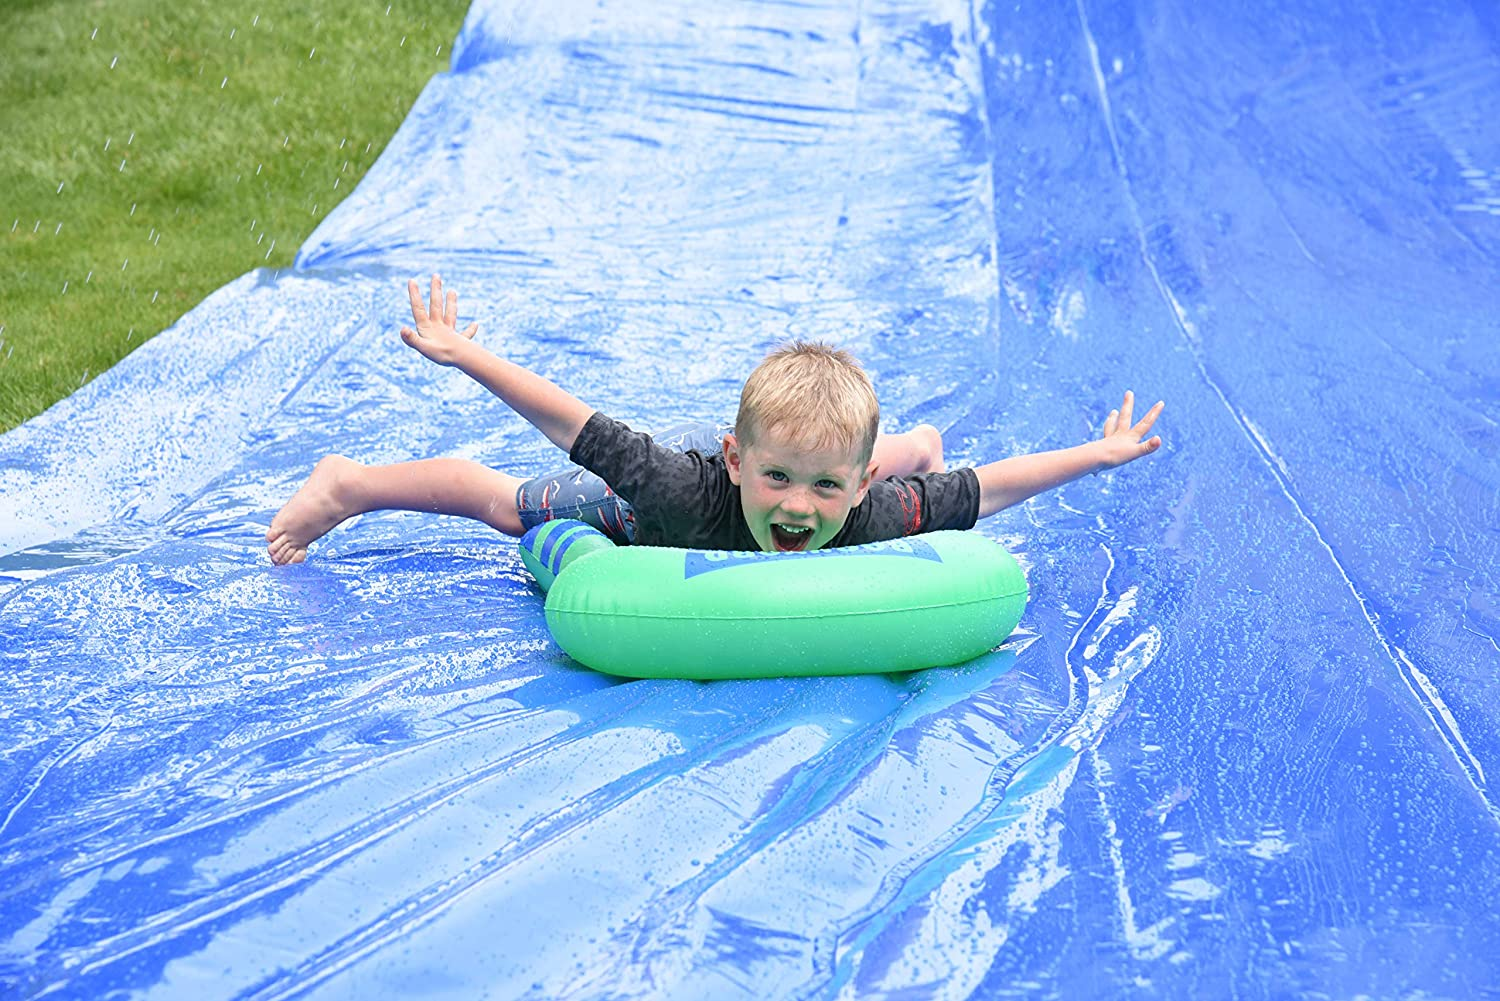 BACKYARD BLAST Heavy Duty Waterslide